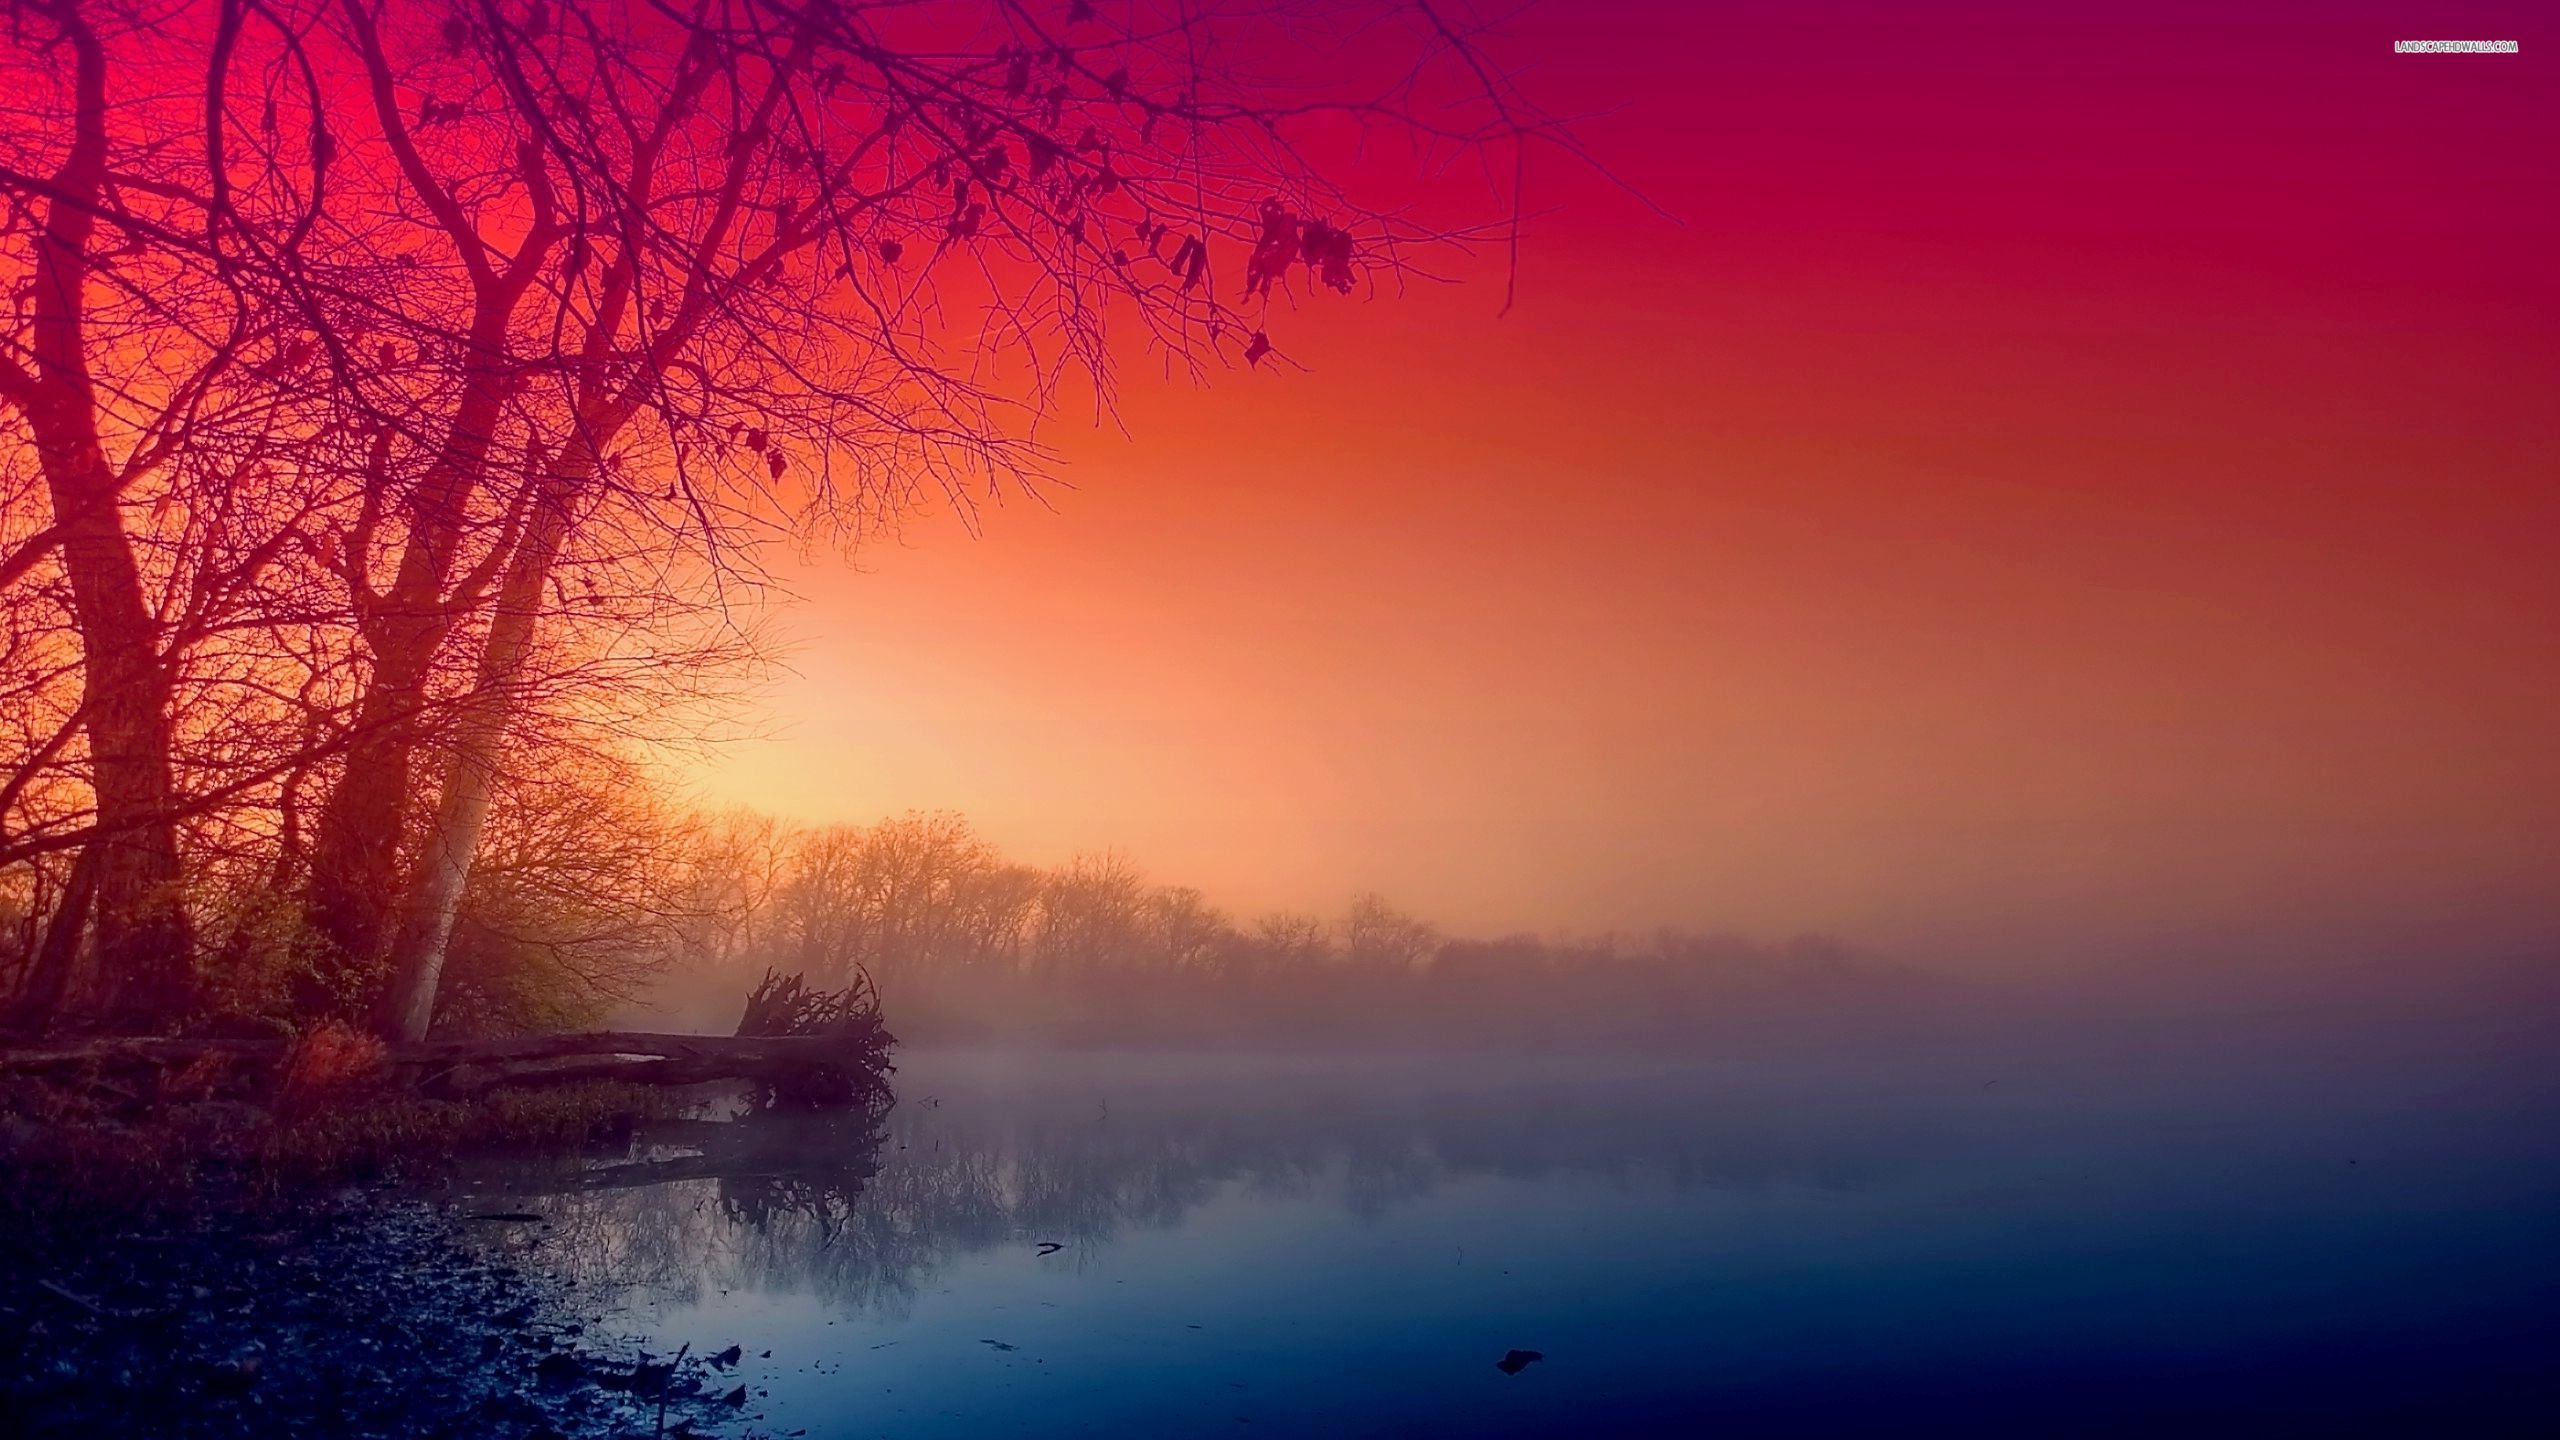 ... Beautiful red morning fog wallpaper 2560x1440 1440p ...